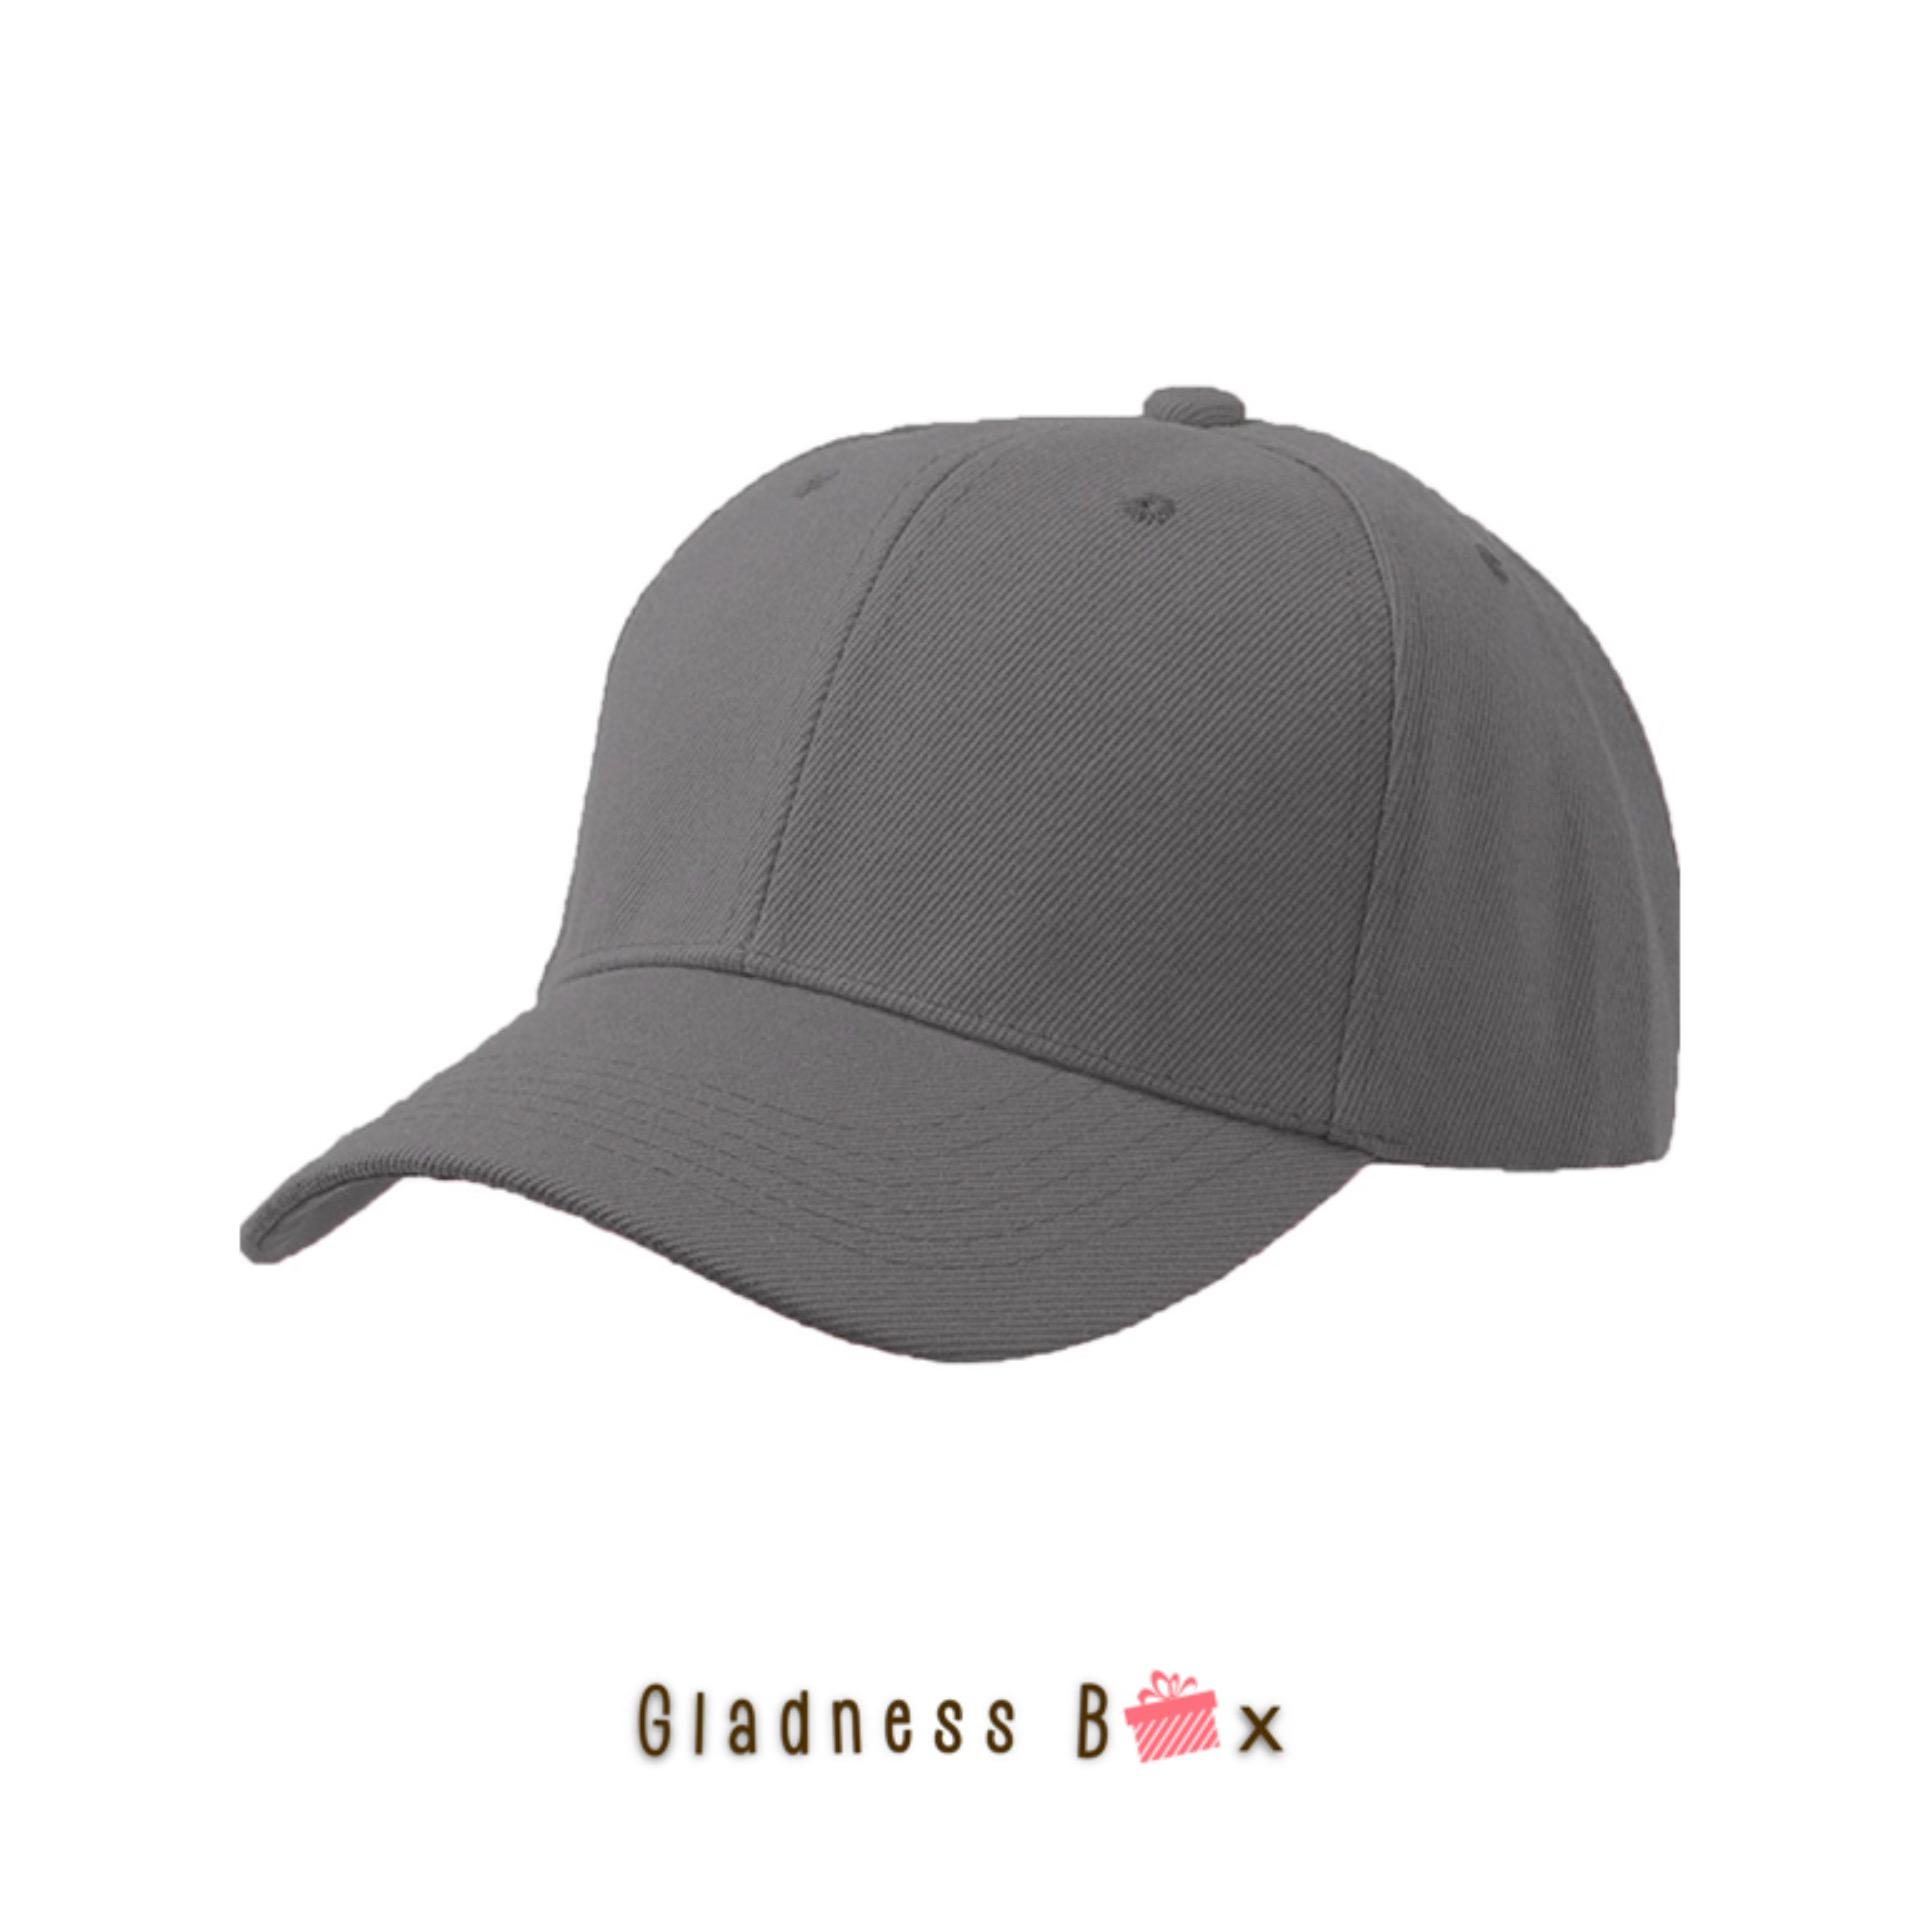 Hats for Men for sale - Mens Hats online brands 2afd04677e4c